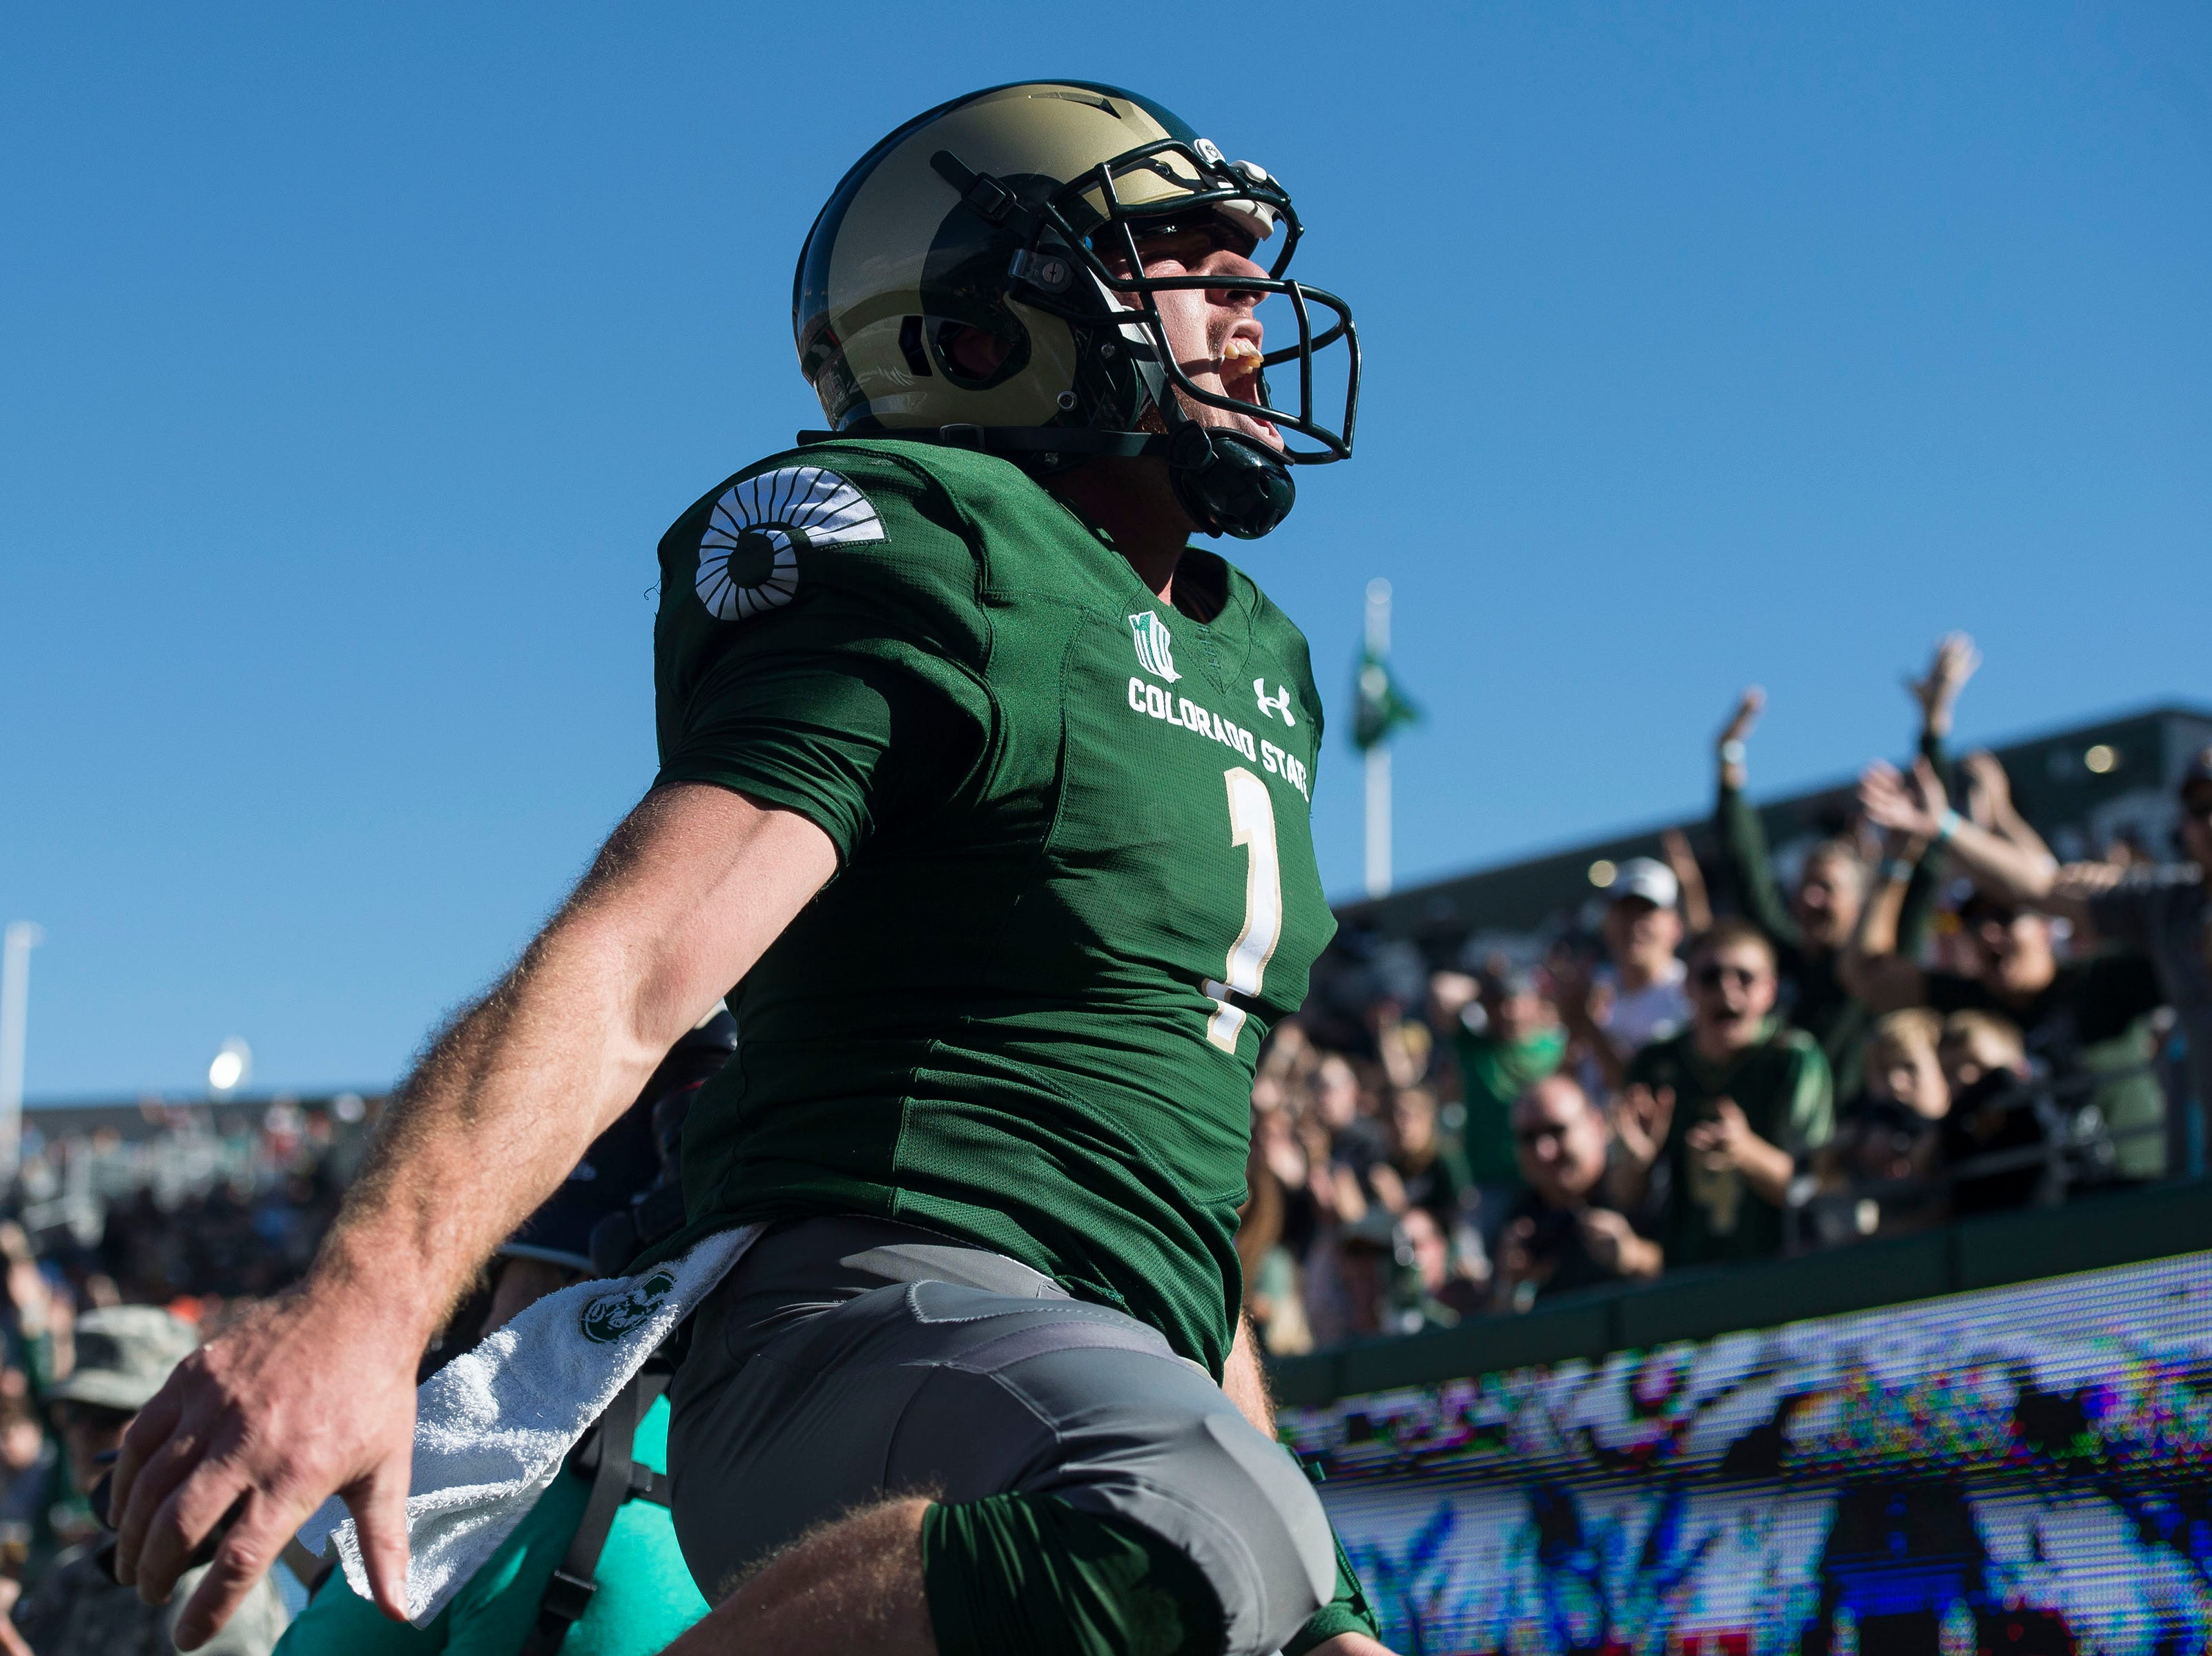 Colorado State University senior quarterback K.J. Carta-Samuels (1) celebrates a rushing touchdown during a game against New Mexico on Saturday, Oct. 13, 2018, at Canvas Stadium in Fort Collins, Colo.